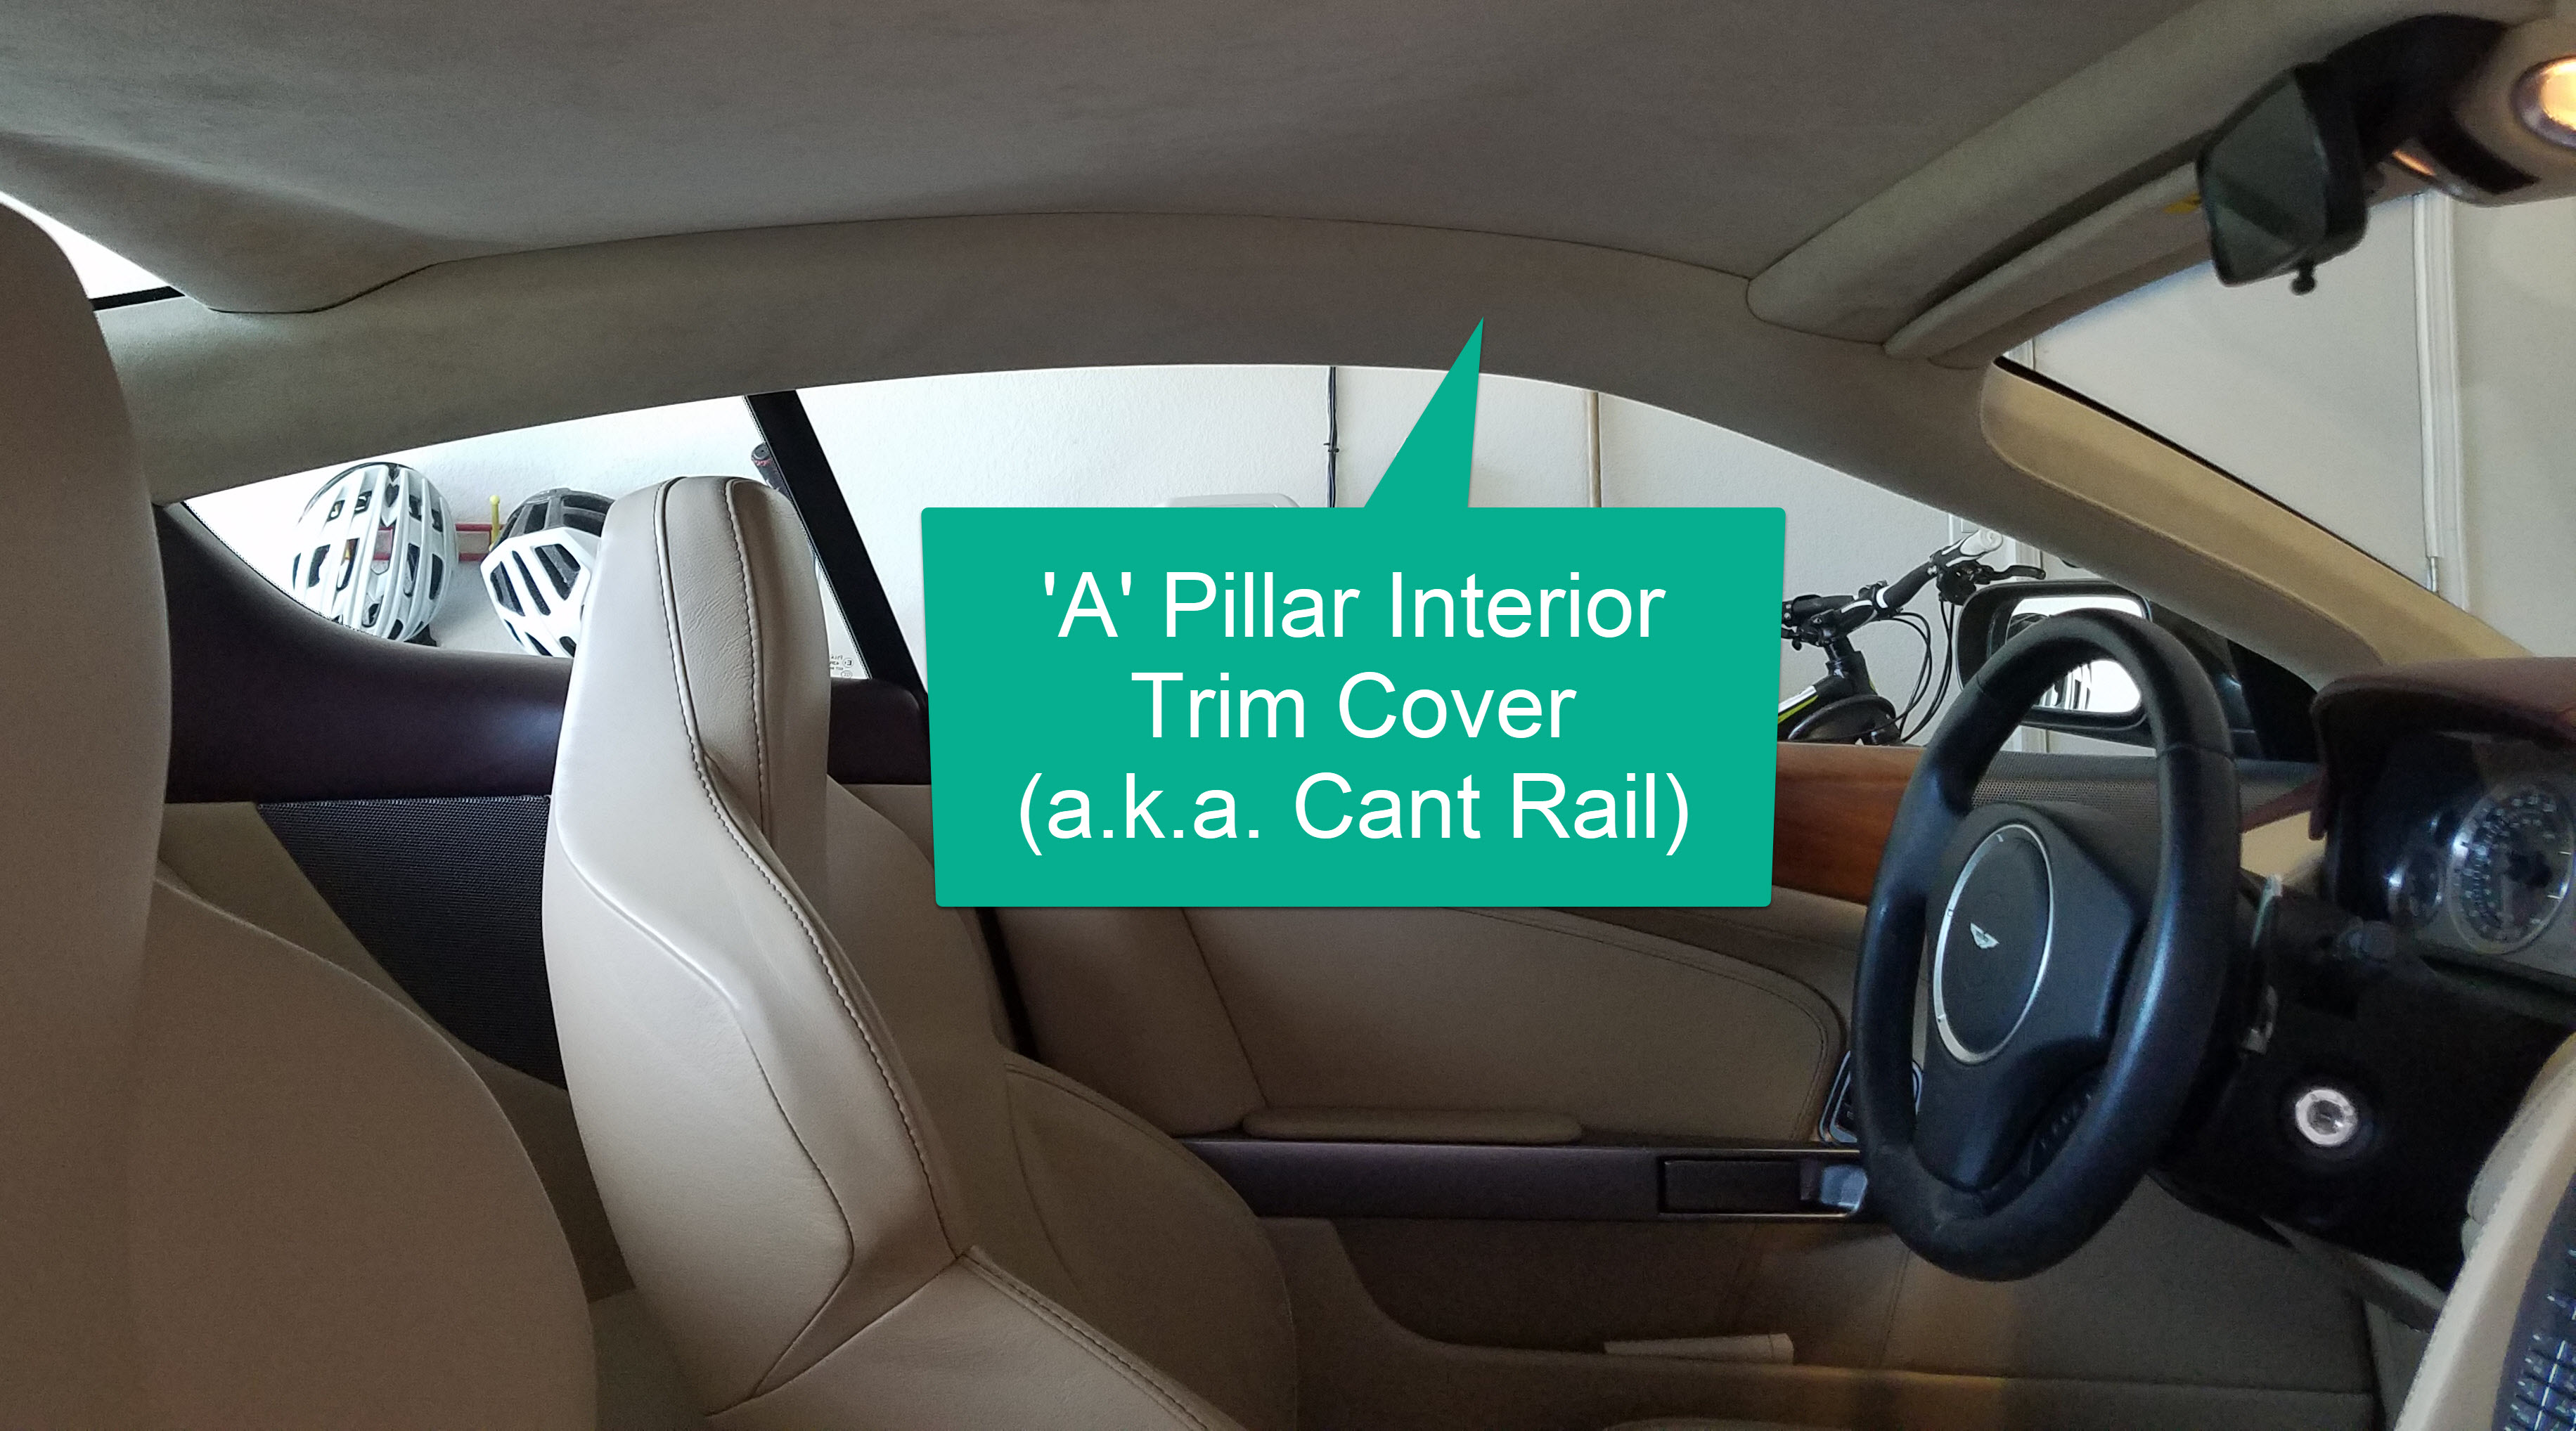 removing the a pillar interior trim cover (cant rail) from an aston